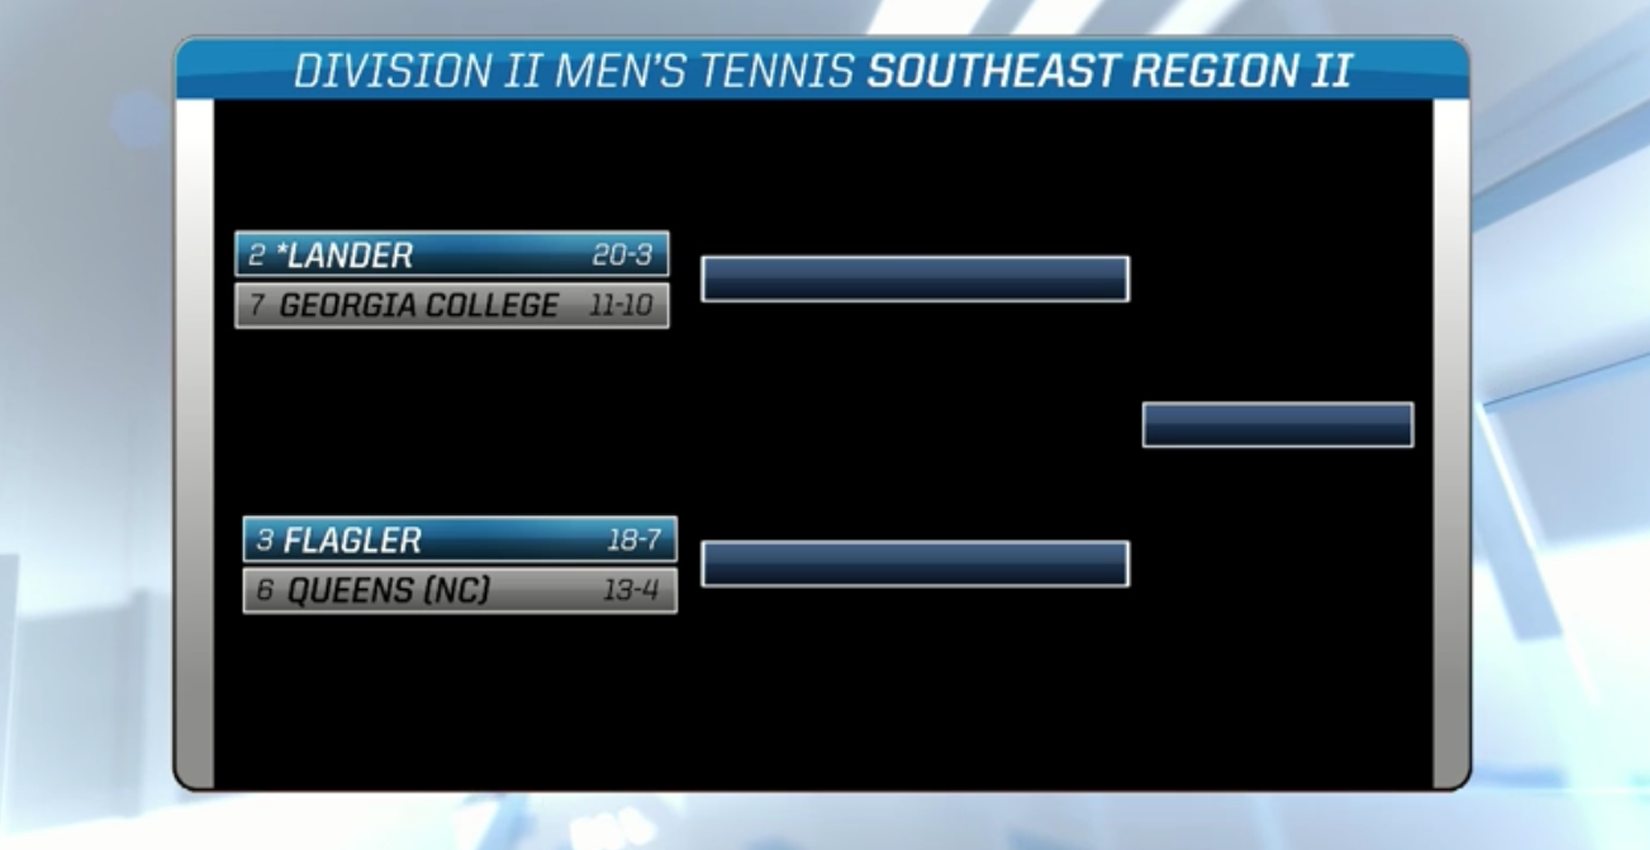 Men's Tennis Regional Bracket